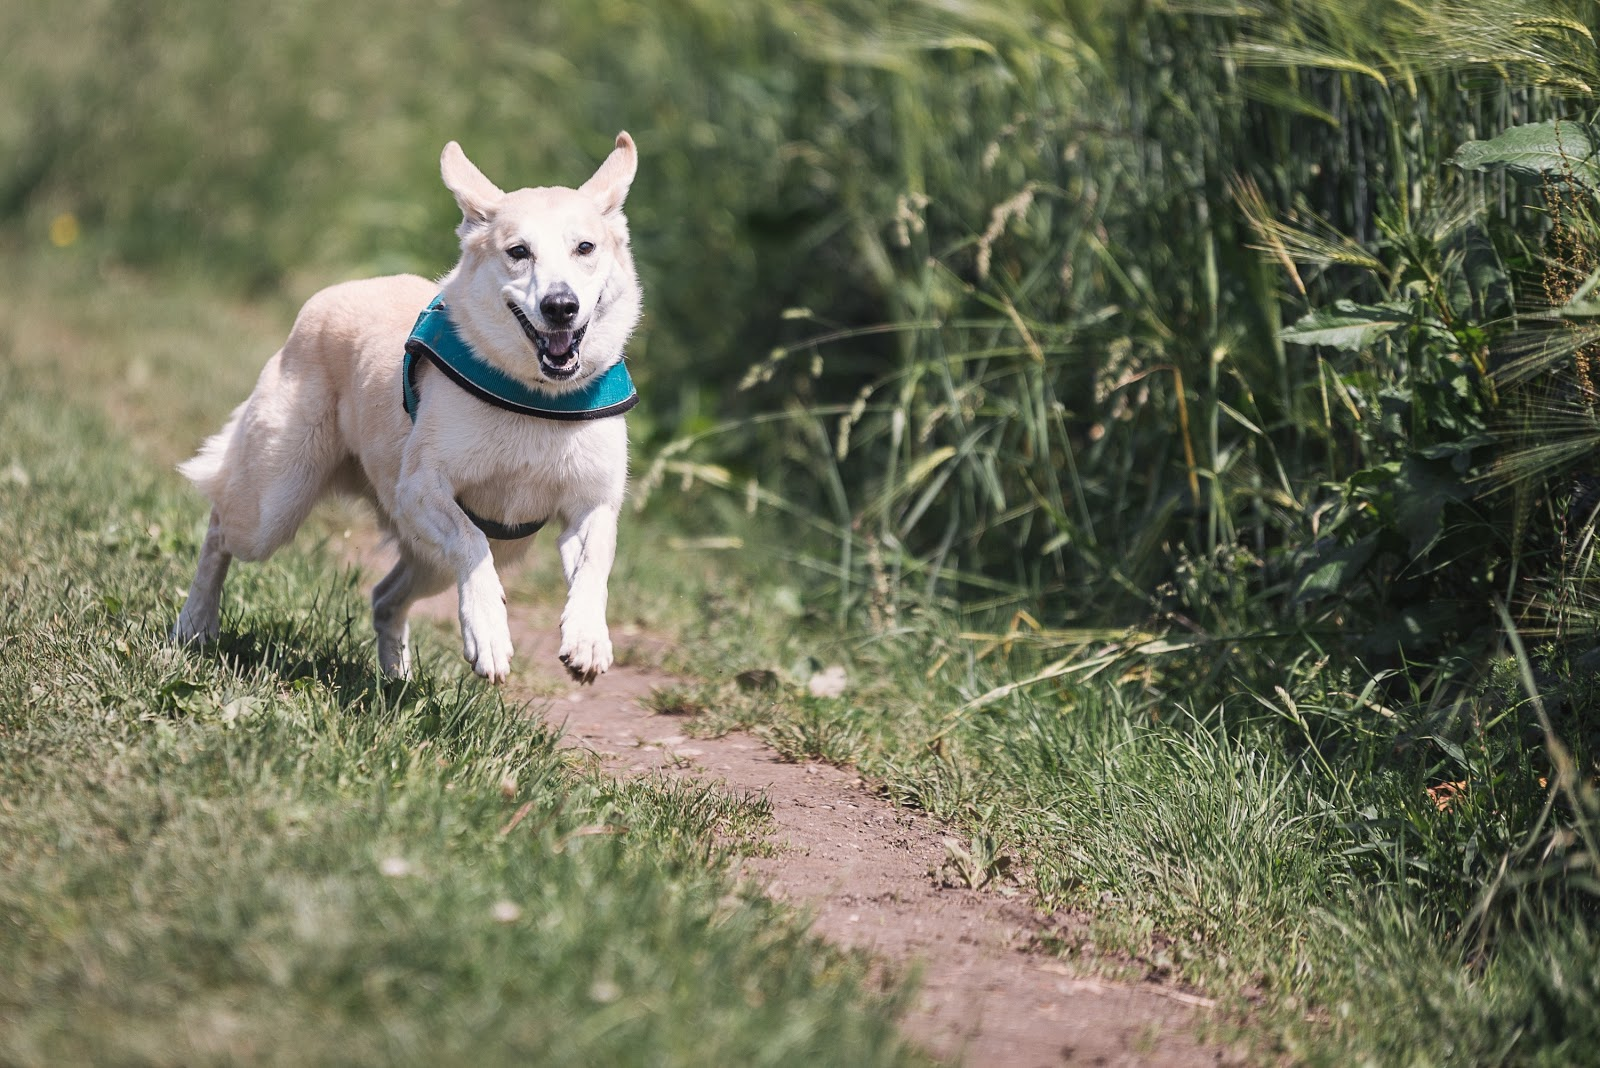 A large white dog in a harness runs through a park.